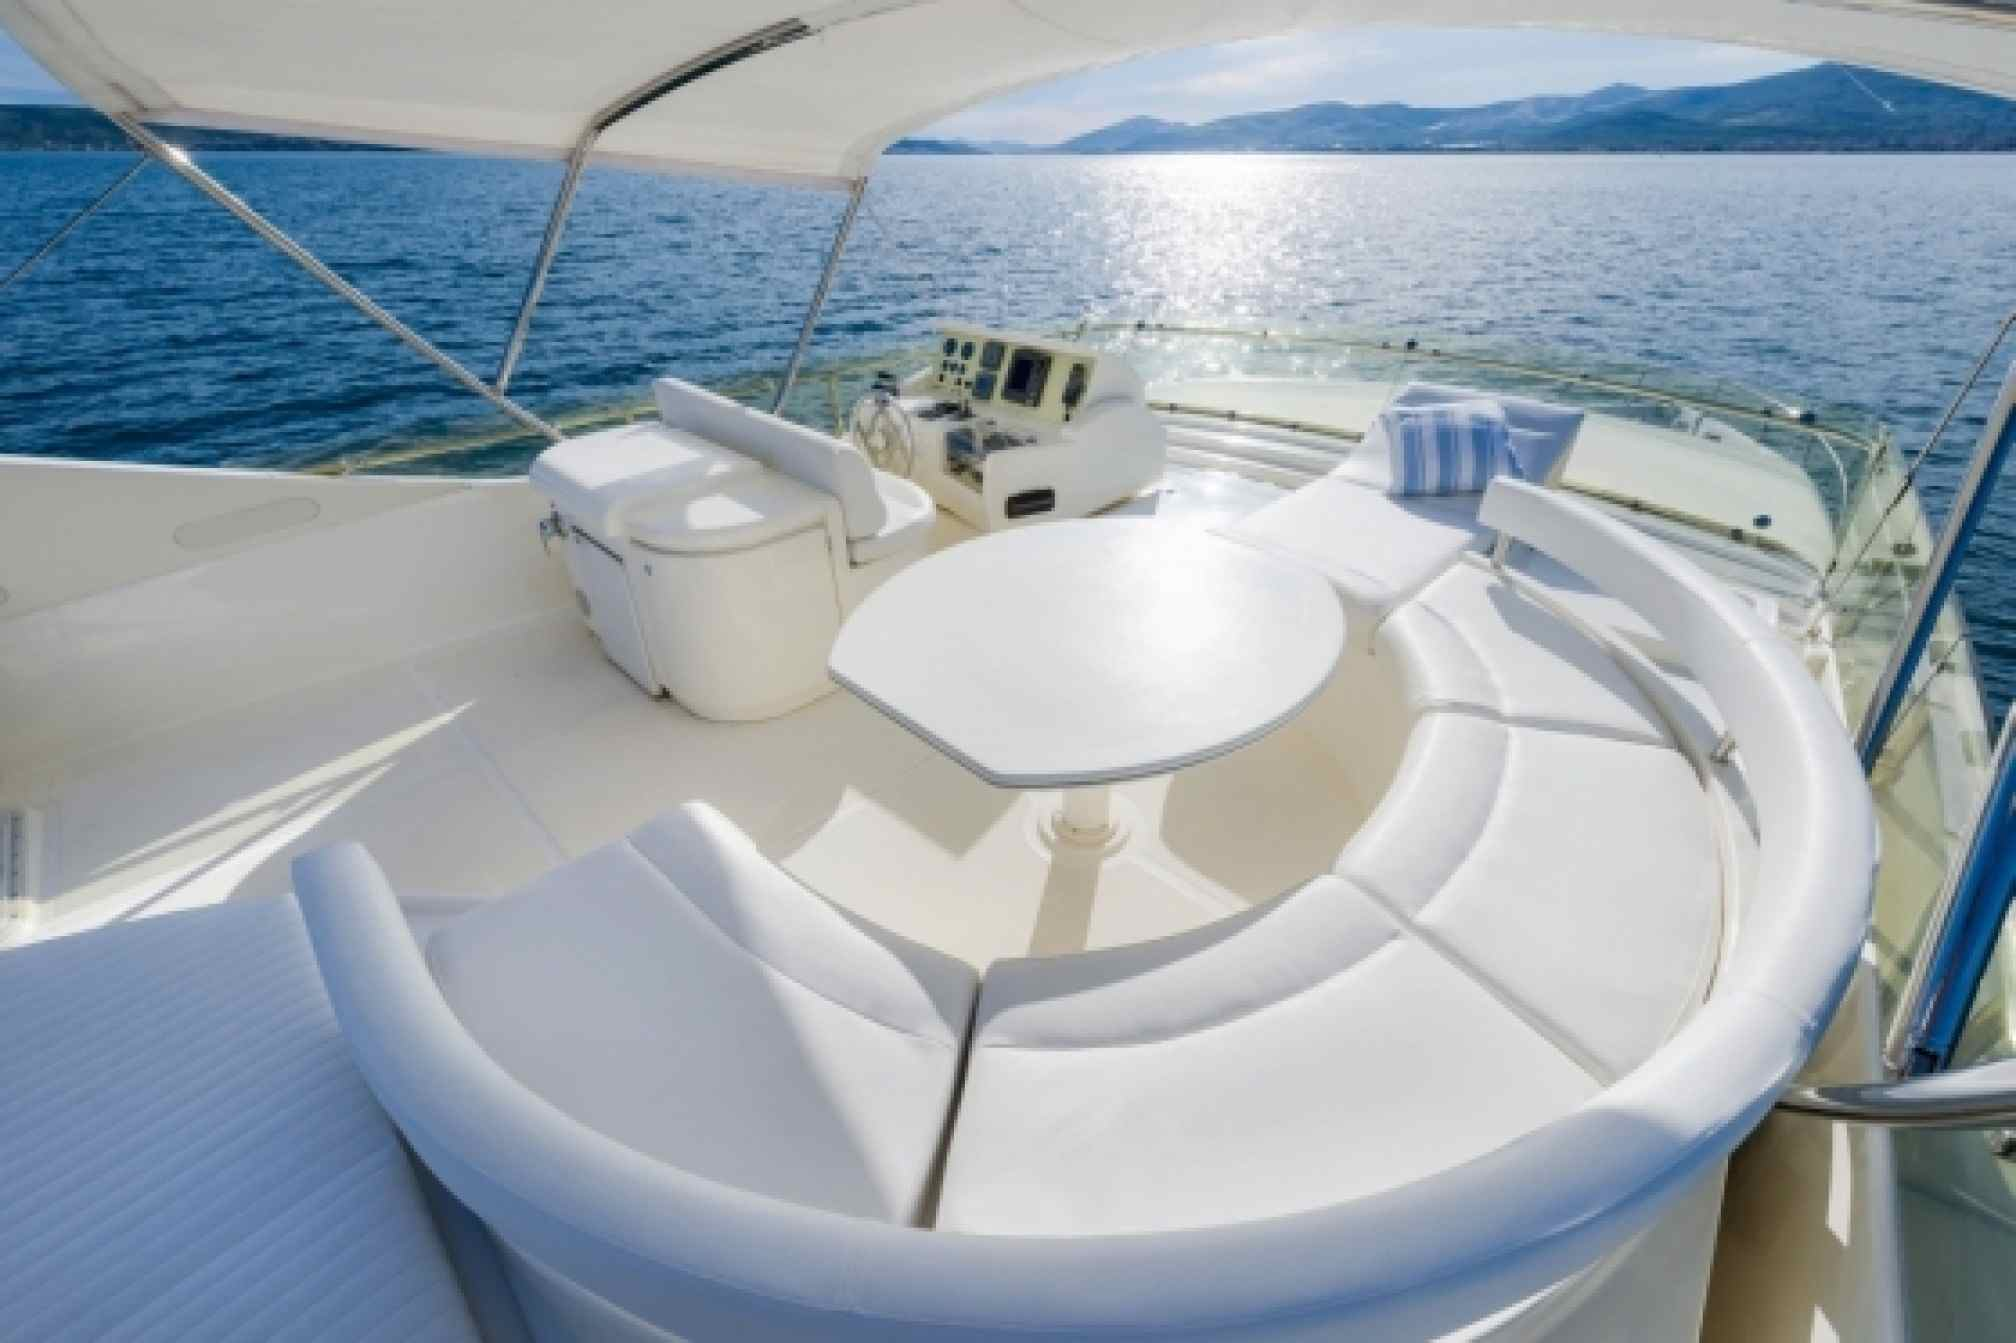 Ferretti 730 charter yacht outdoors